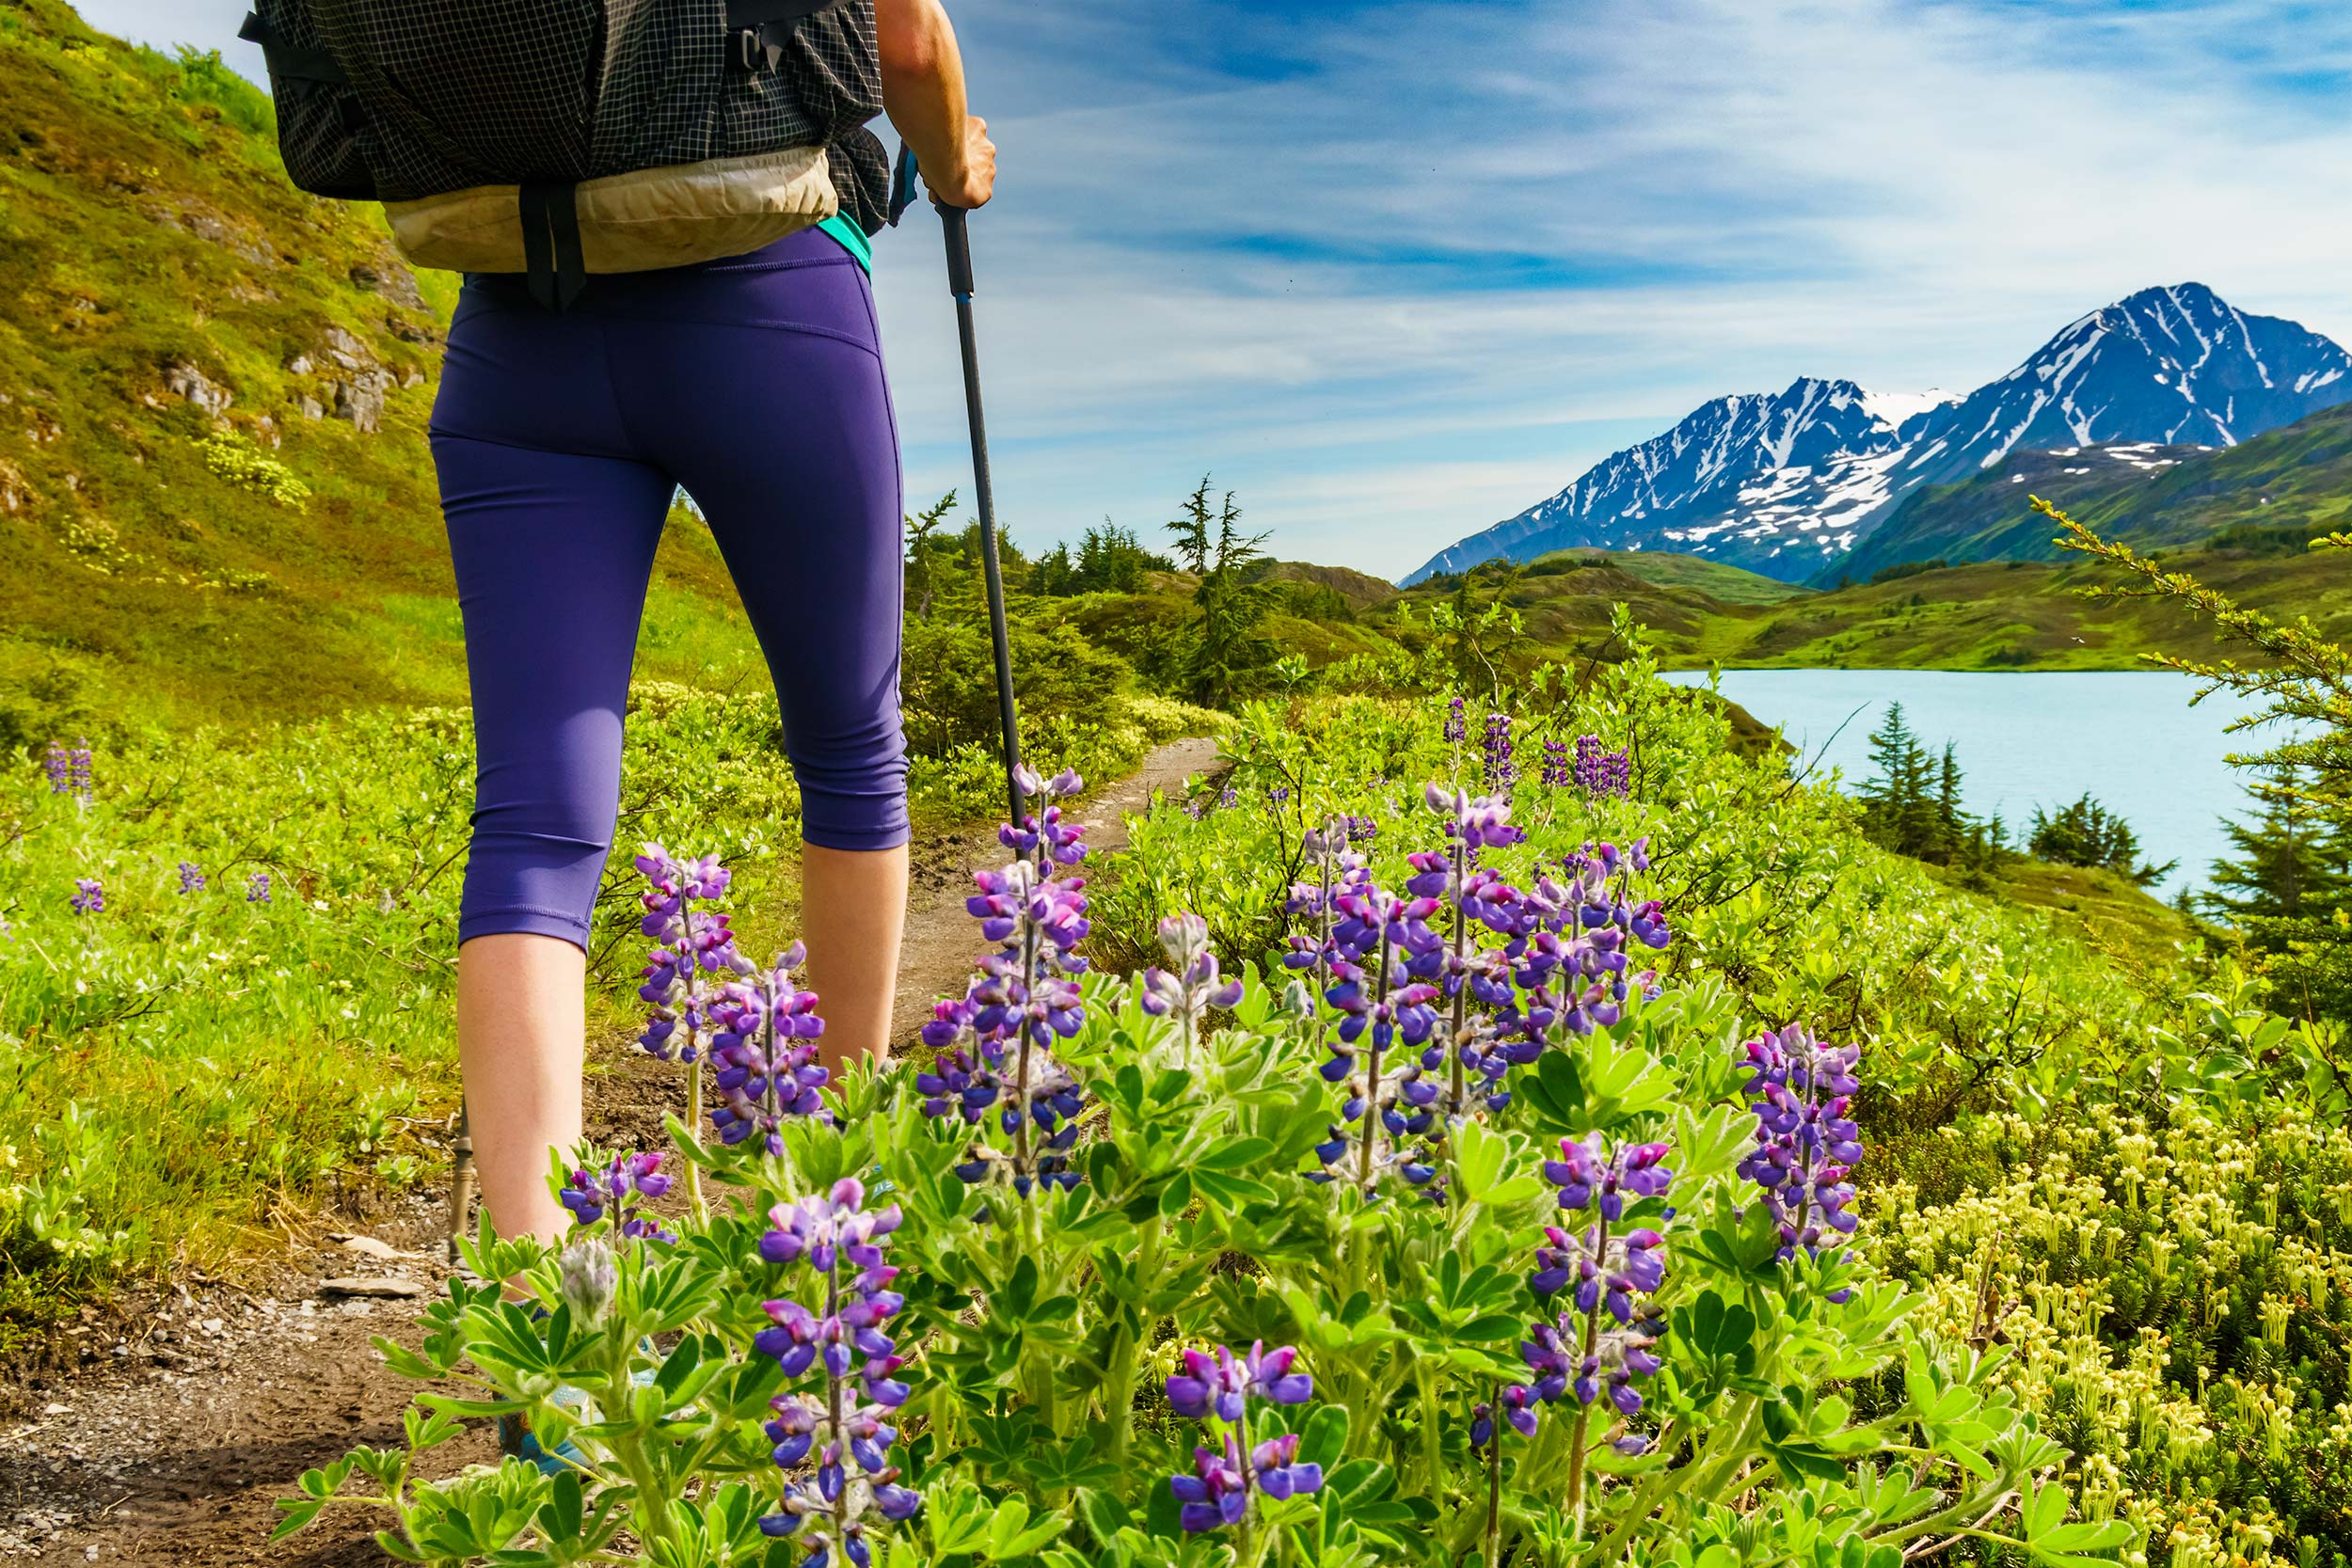 Alaska-Active-Lifestyle-Hiking-MD180718VAK_HB064